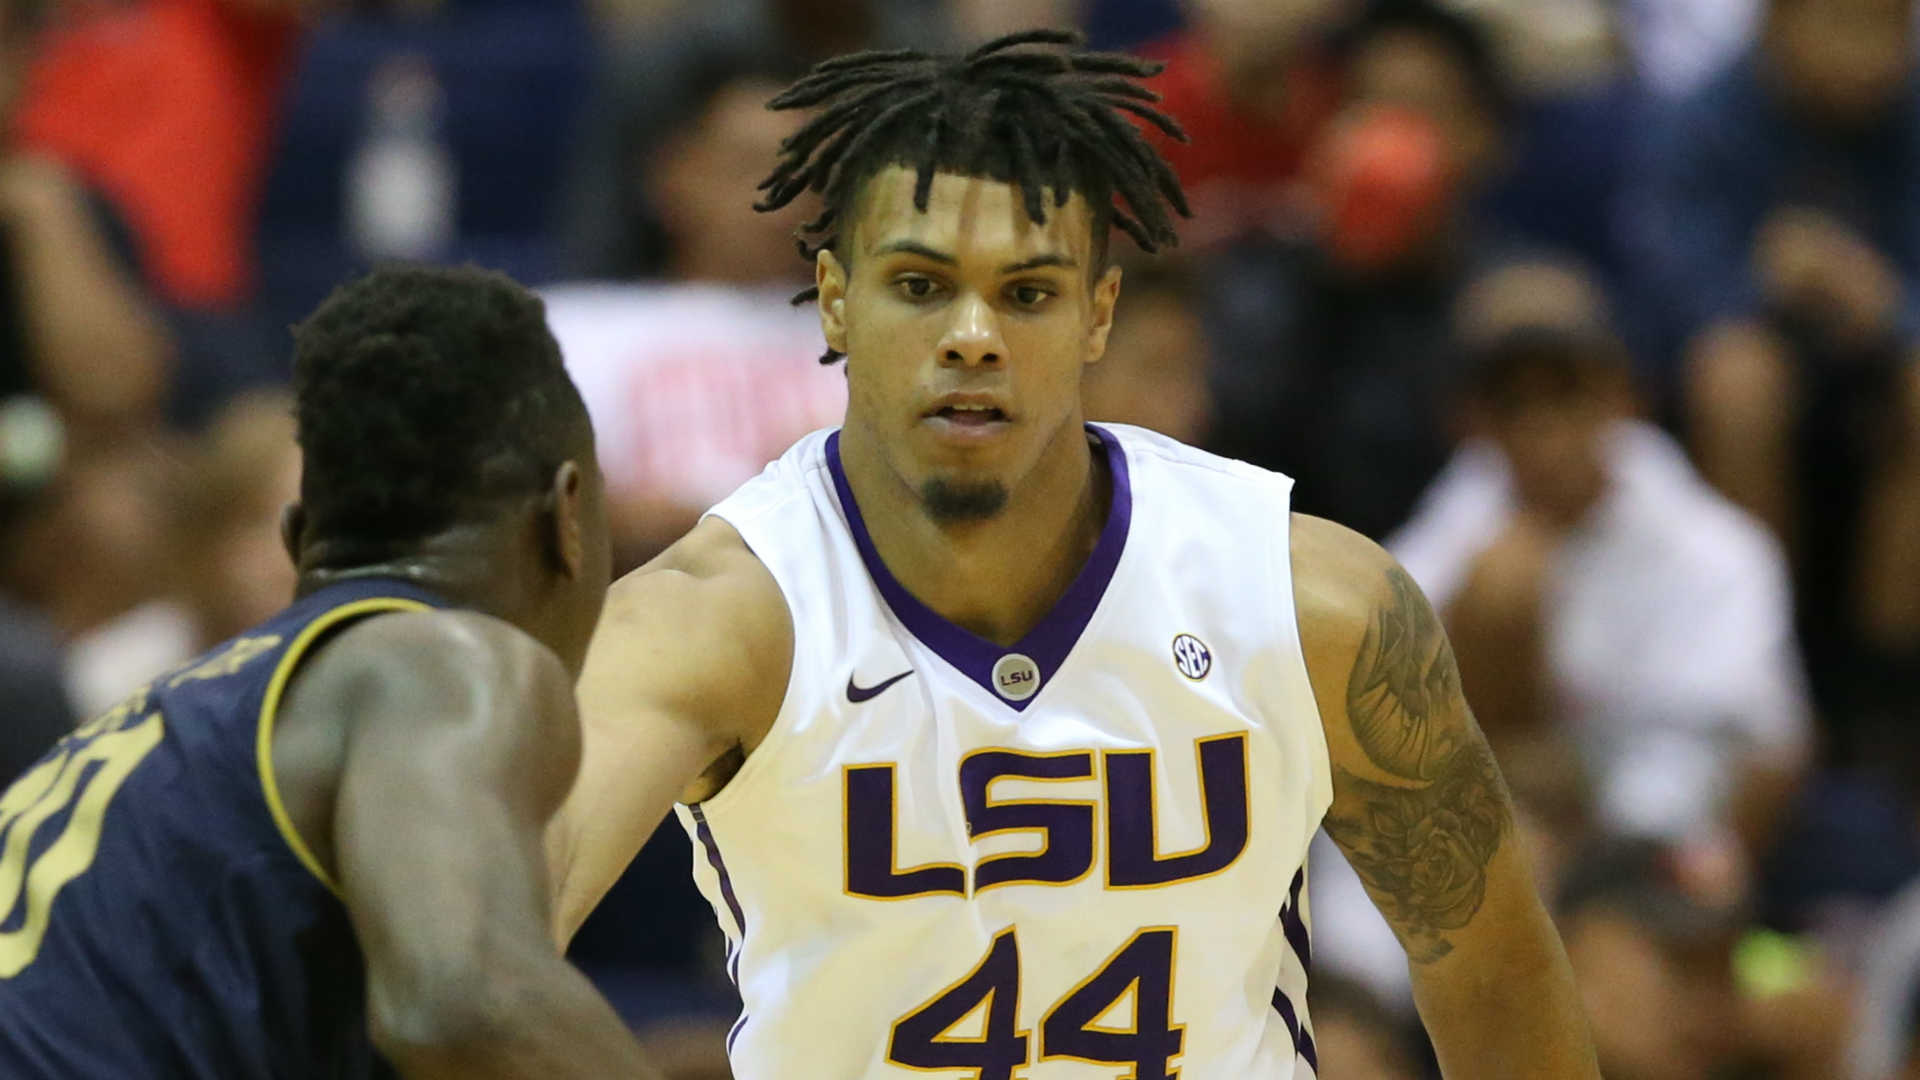 LSU basketball player Wayde Sims, 20, shot to death